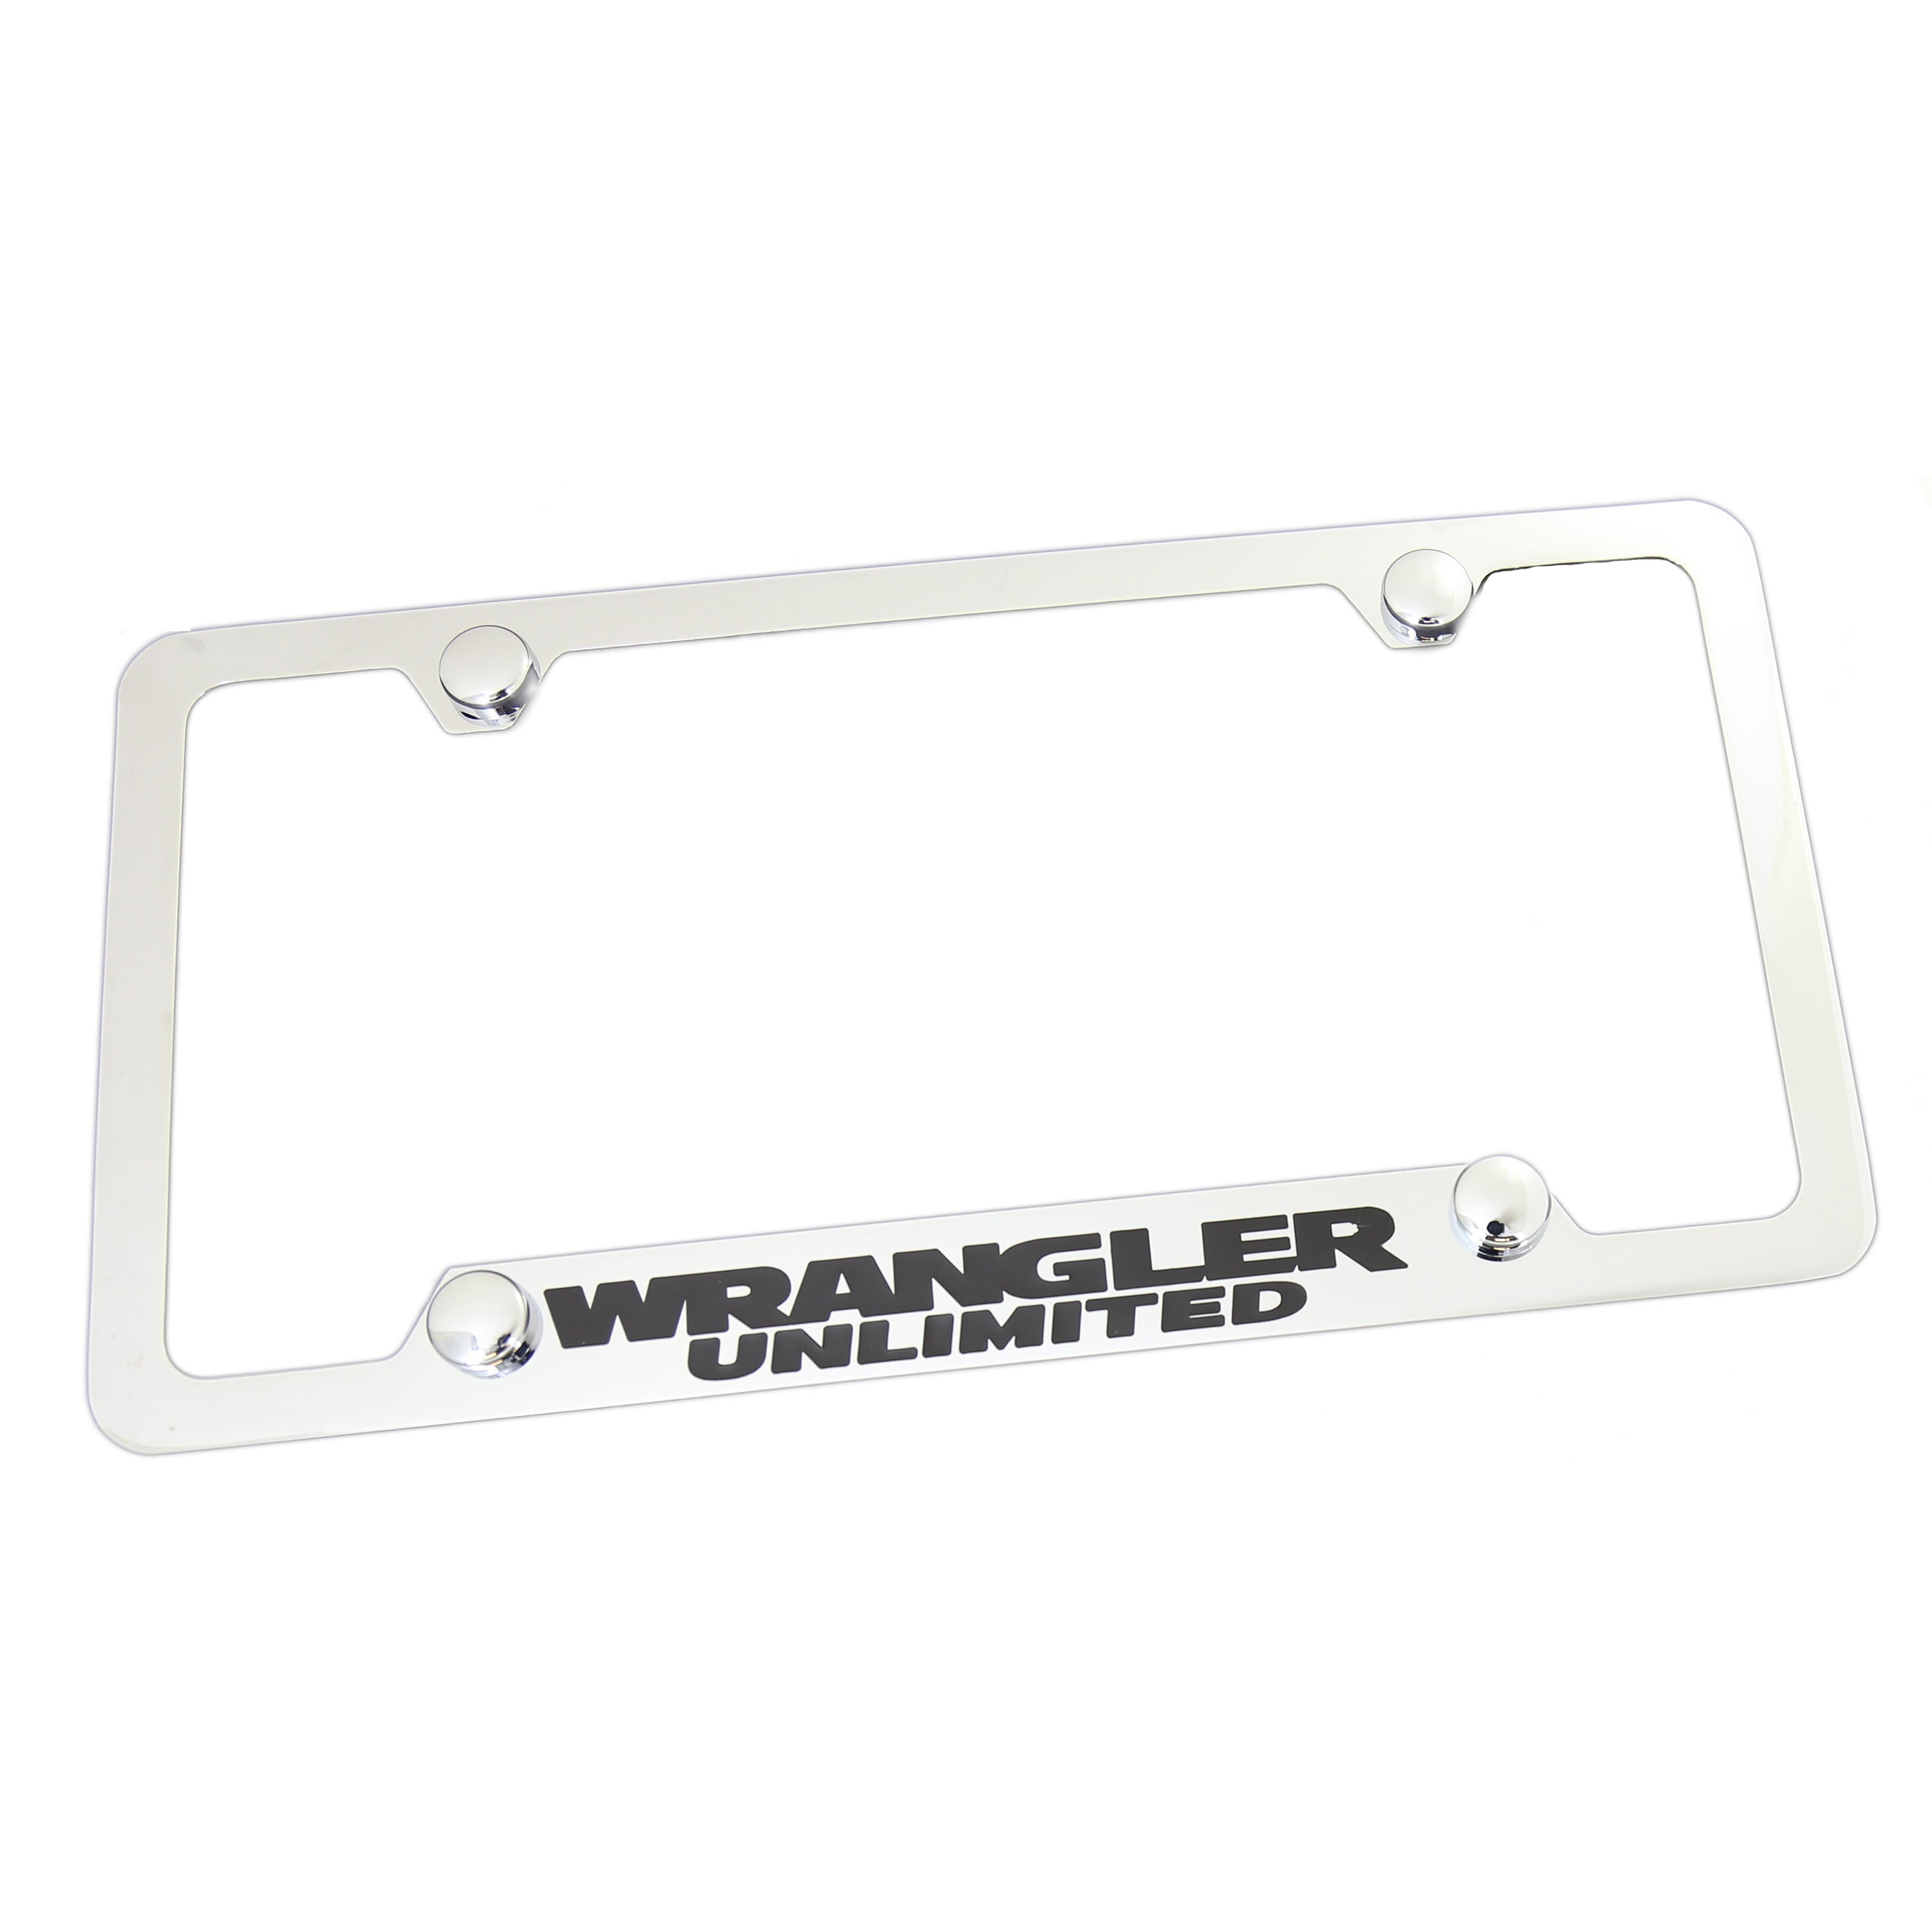 Jeep Wrangler Unlimited License Plate Frame With 4 Hole (Chrome) - Custom Werks